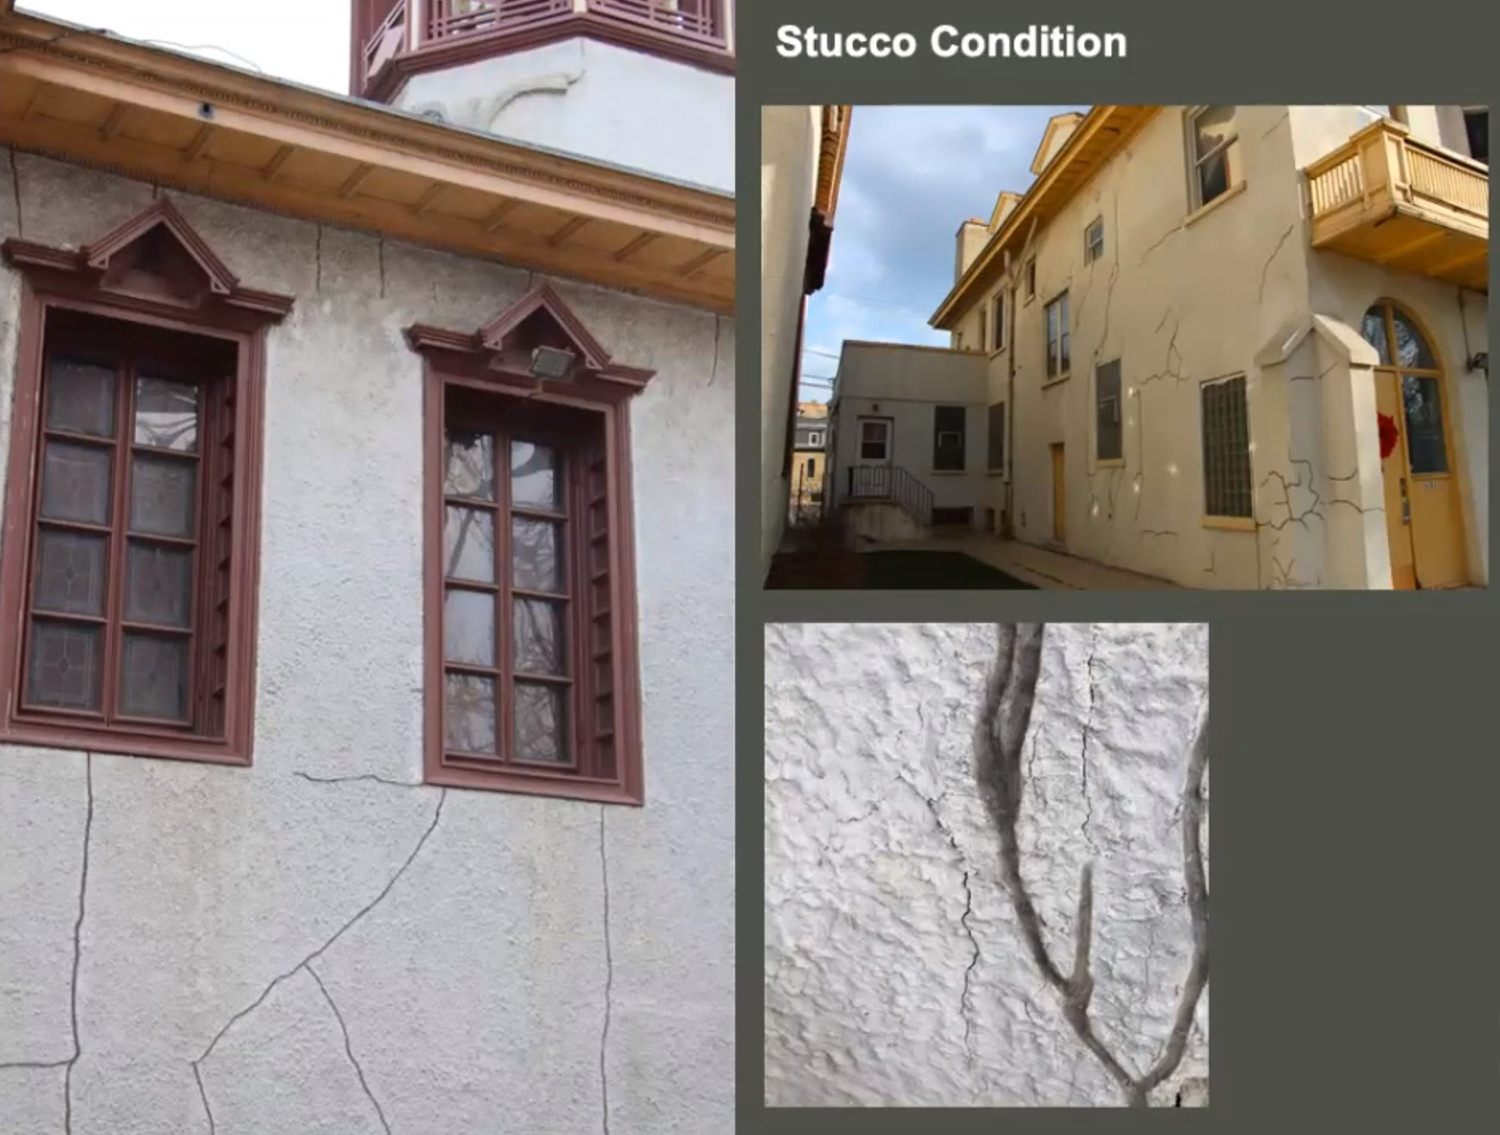 Stucco Condition on Holy Trinity Orthodox Cathedral and Rectory. Images by Landmarks Commission